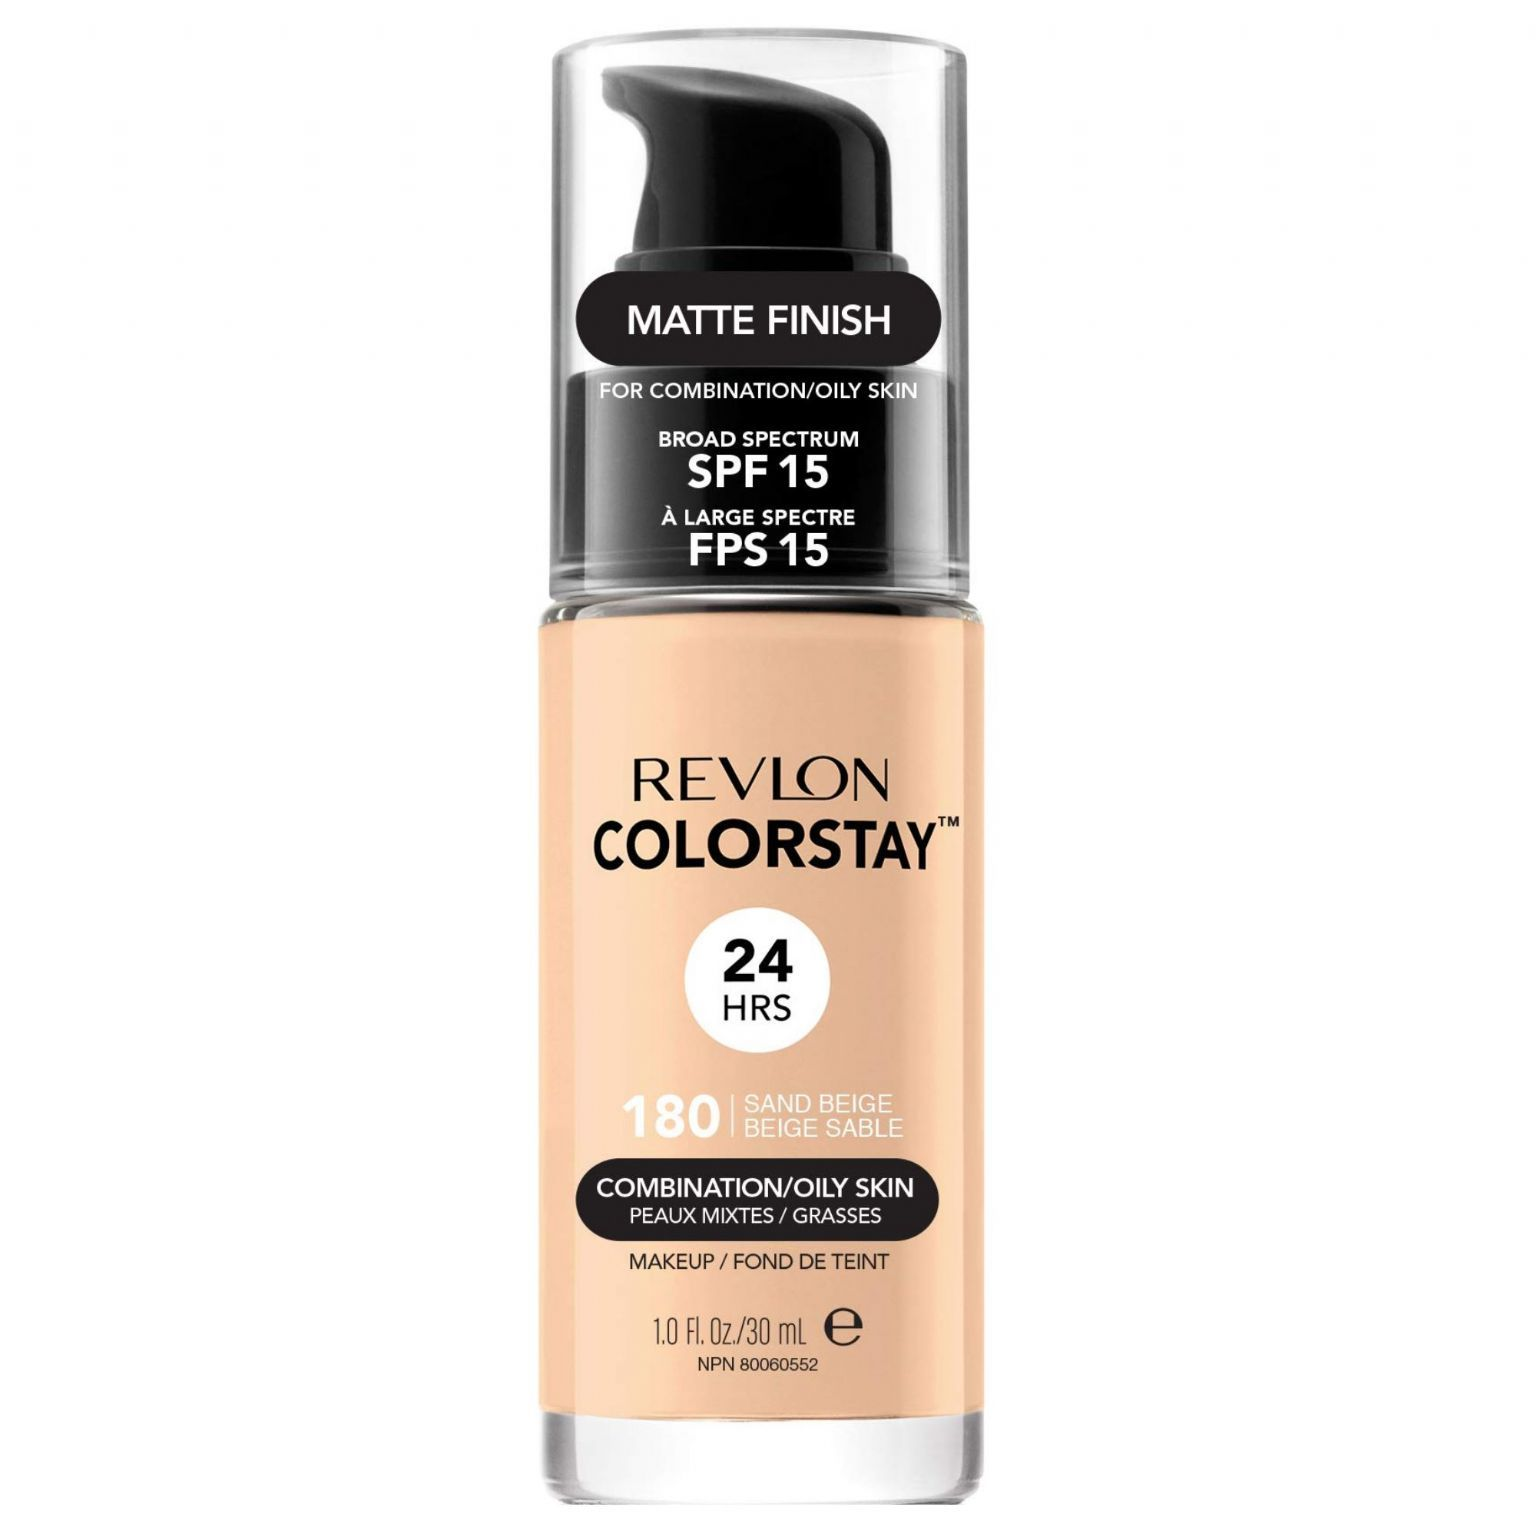 Colorstay 24hrs Makeup SPF 15  - Combination/Oily Skin